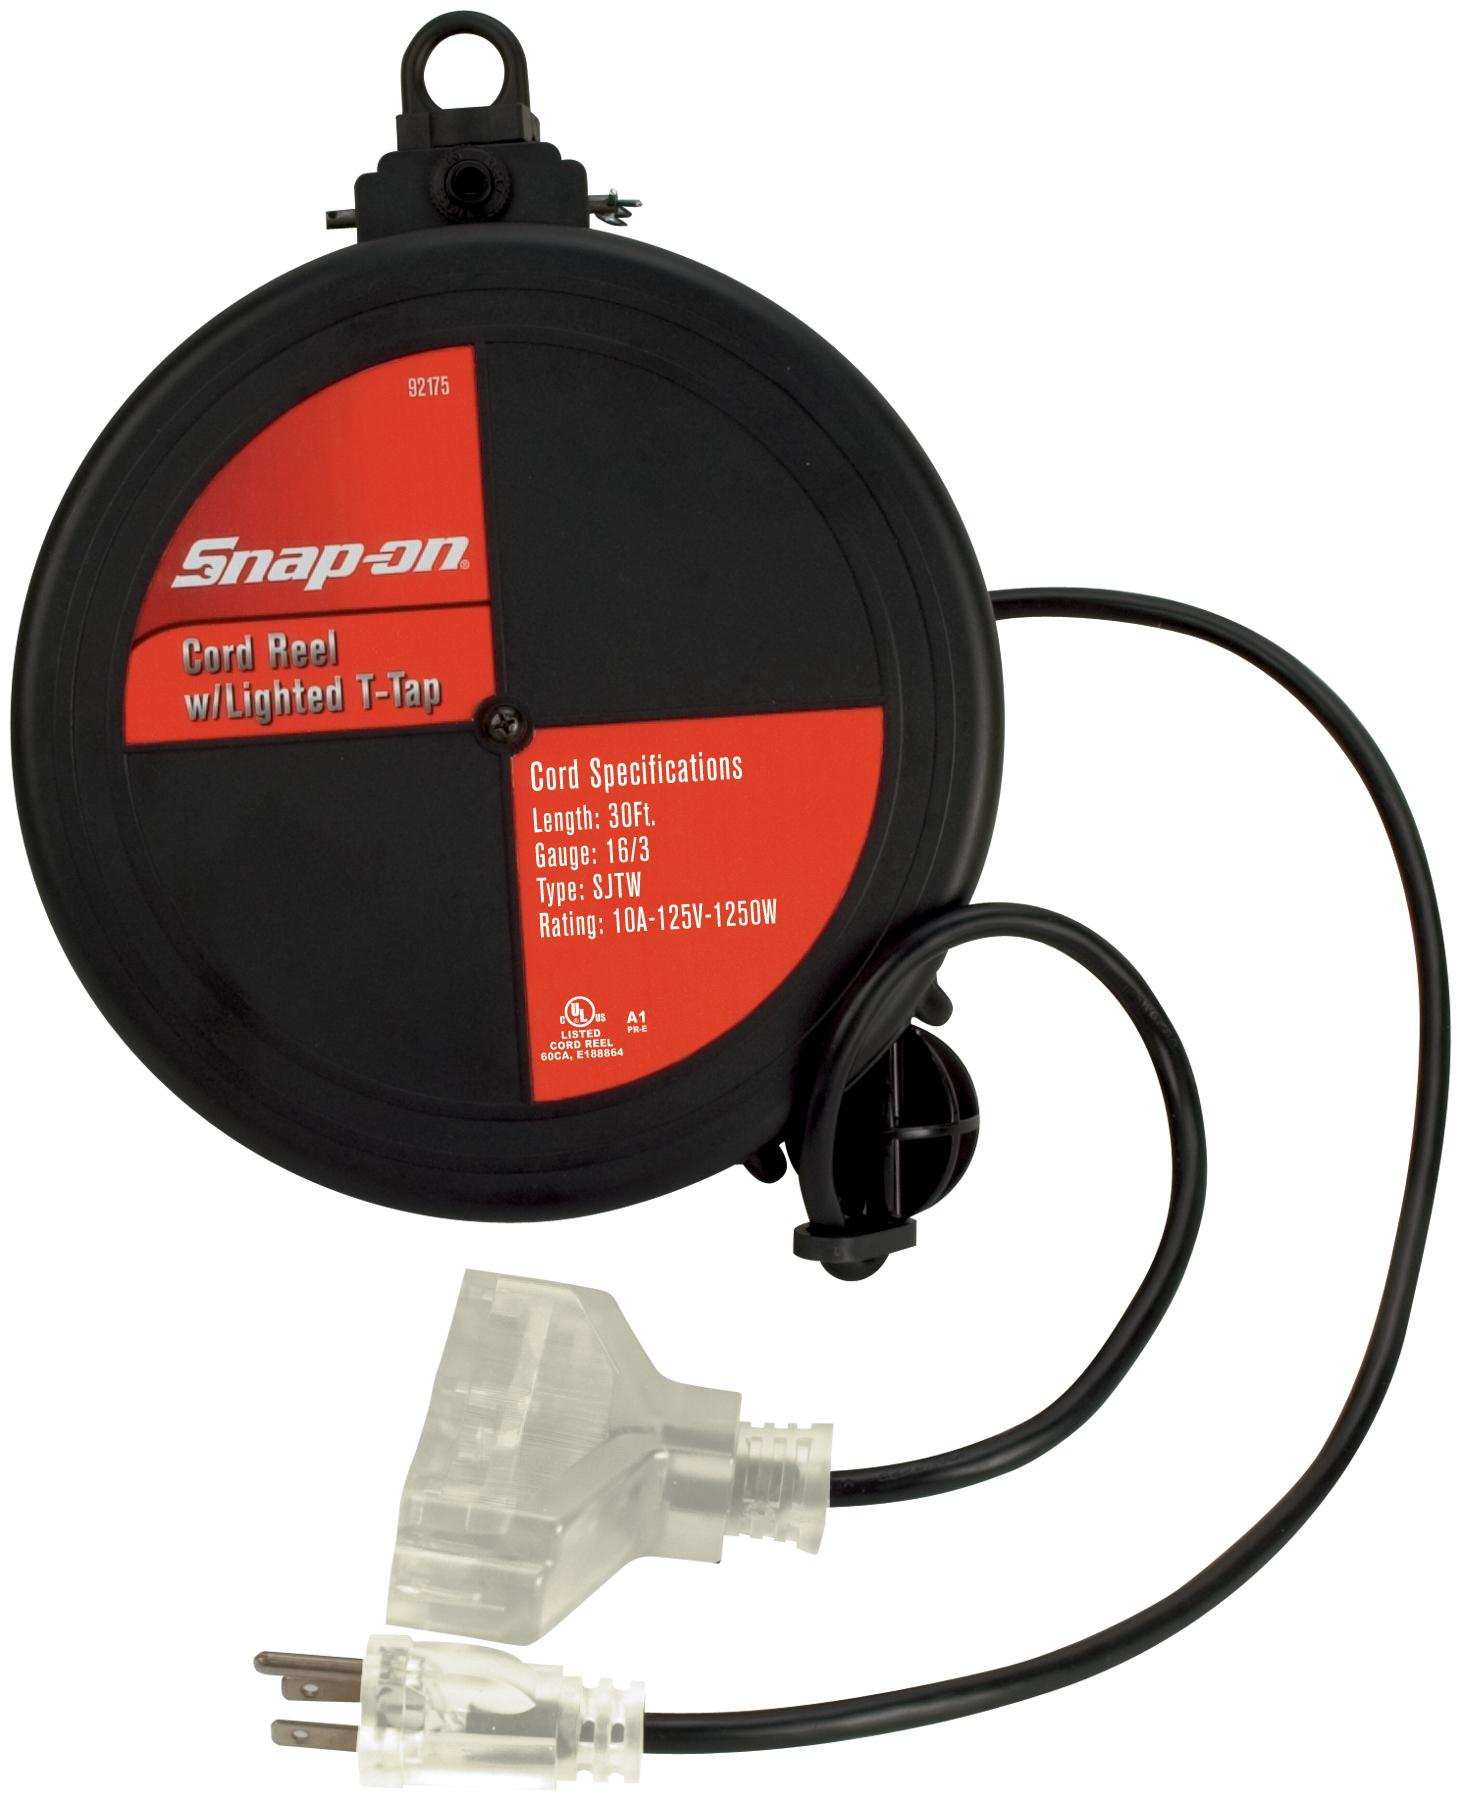 Snap On Cord Reel With Clear Lighted T Tap And Cord Free